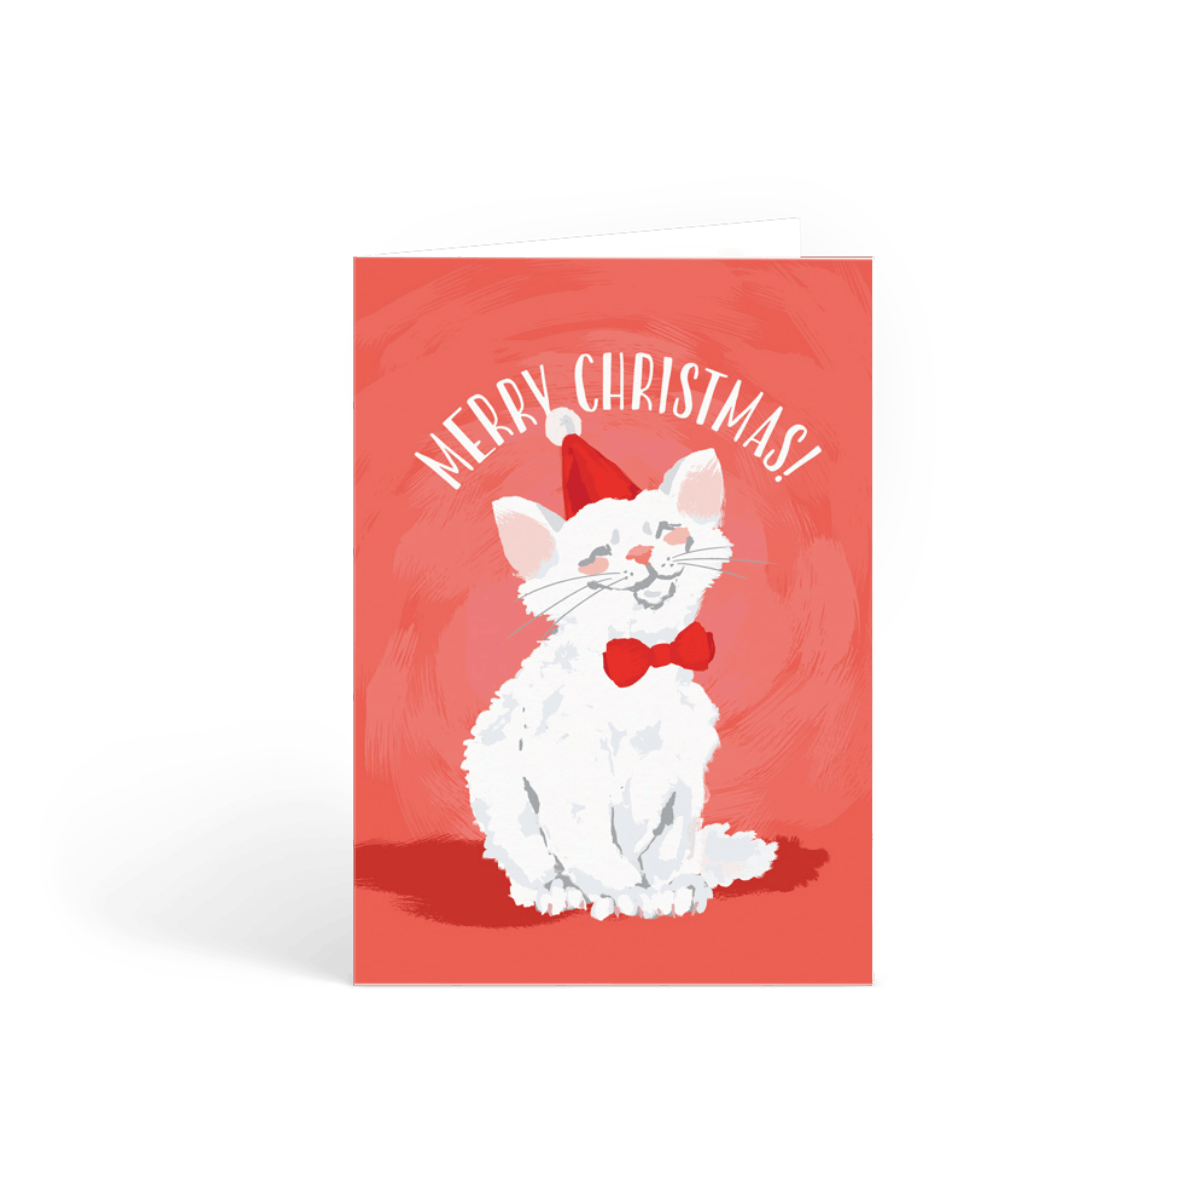 Https%3a%2f%2fwww.papier.com%2fproduct image%2f23660%2f2%2fchristmas kitten 5934 front 1567797828.png?ixlib=rb 1.1